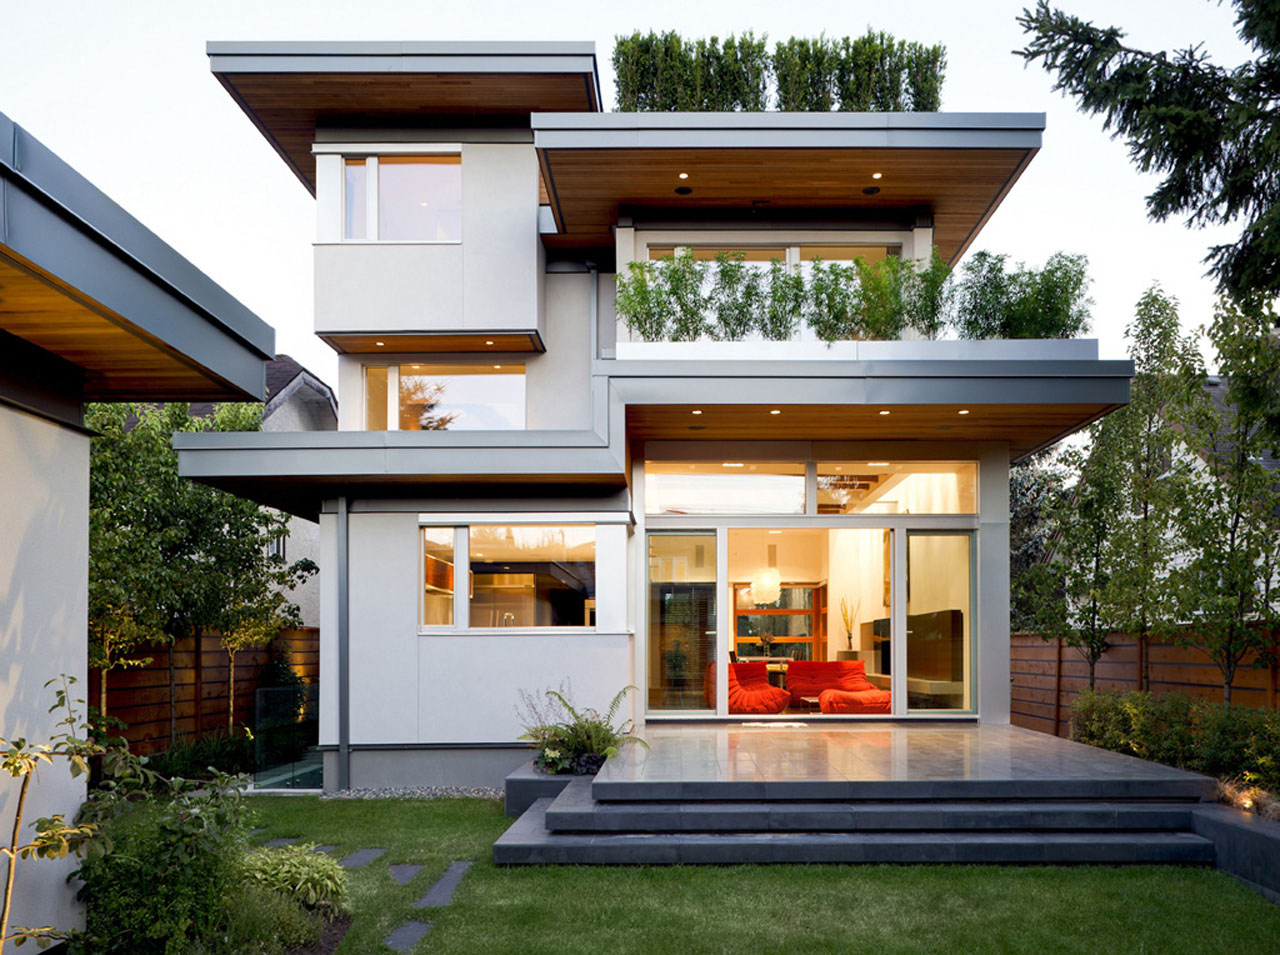 Merveilleux Sustainable Home Design In Vancouver